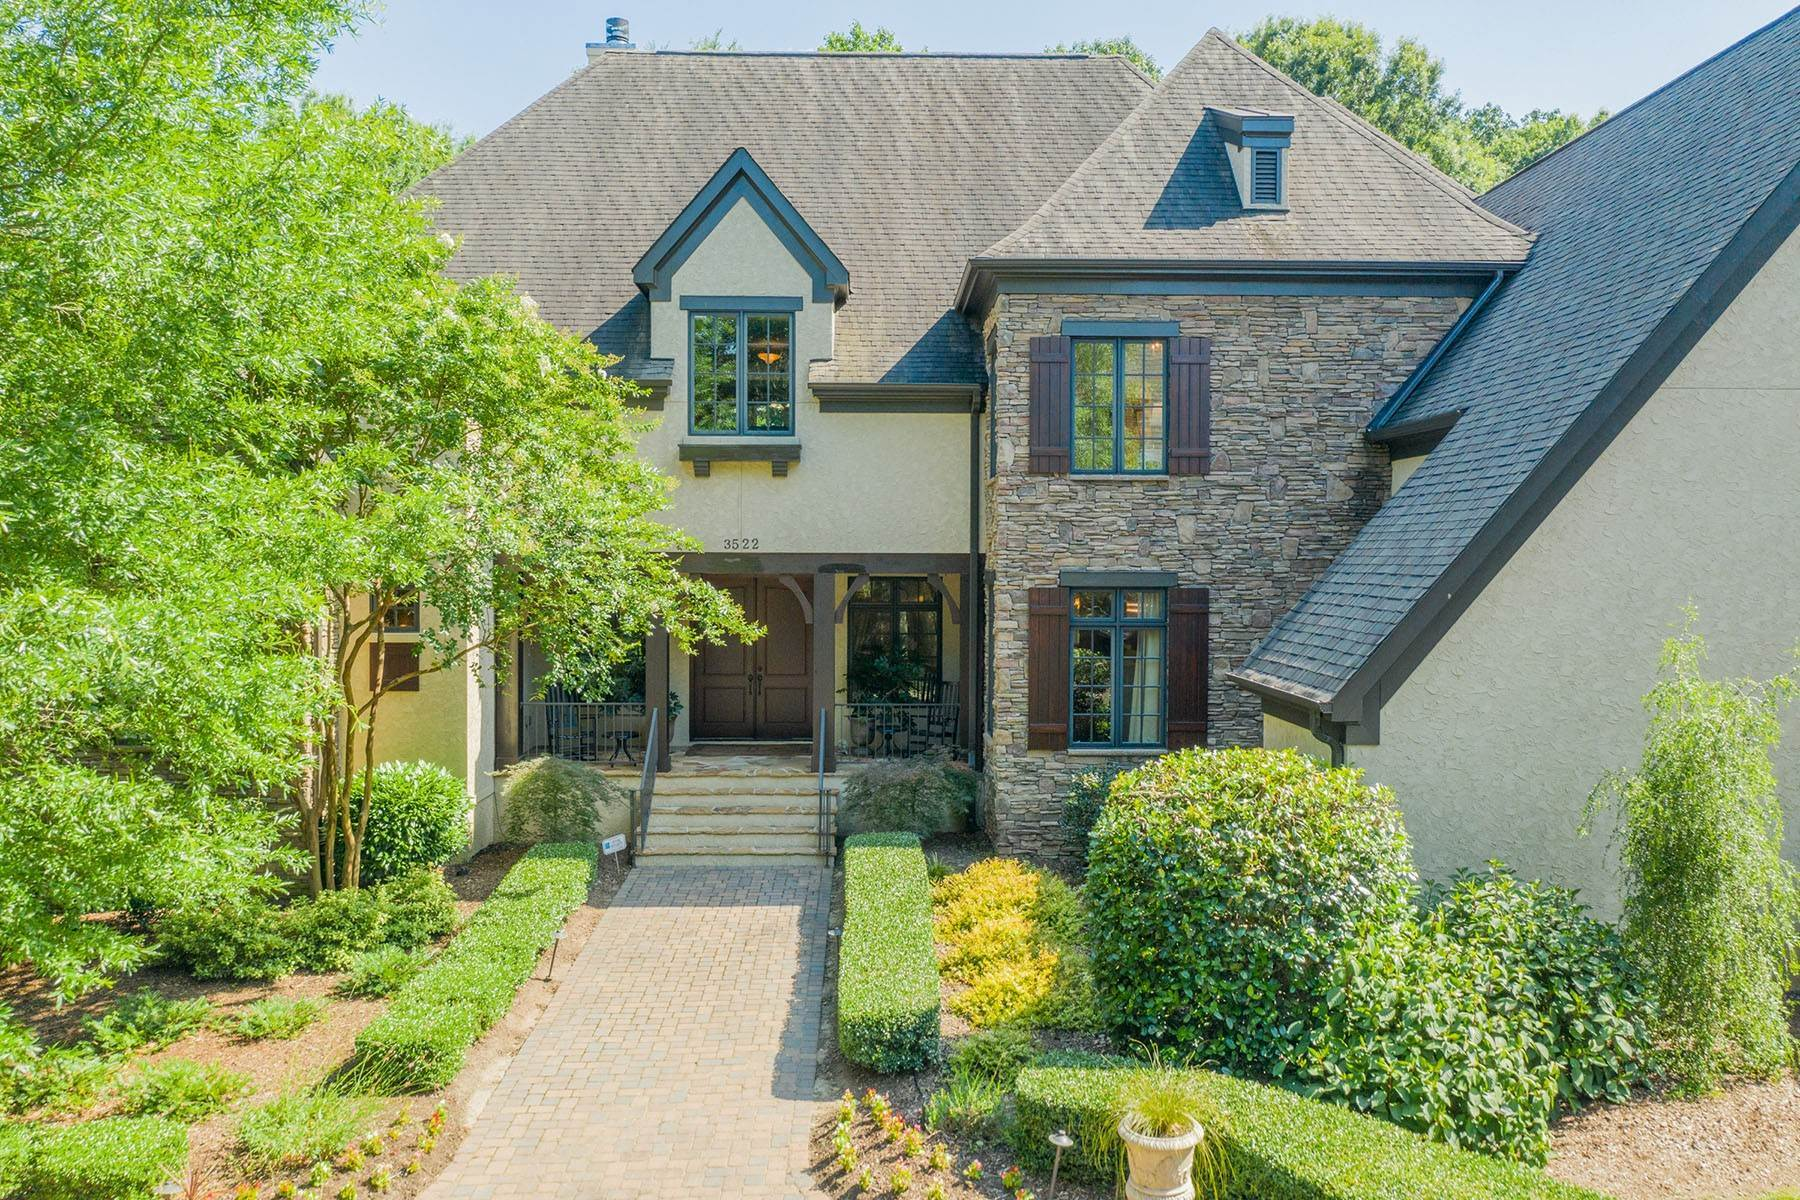 Single Family Homes for Active at WHEATON GROVE 3522 Sharon View Rd Charlotte, North Carolina 28210 United States